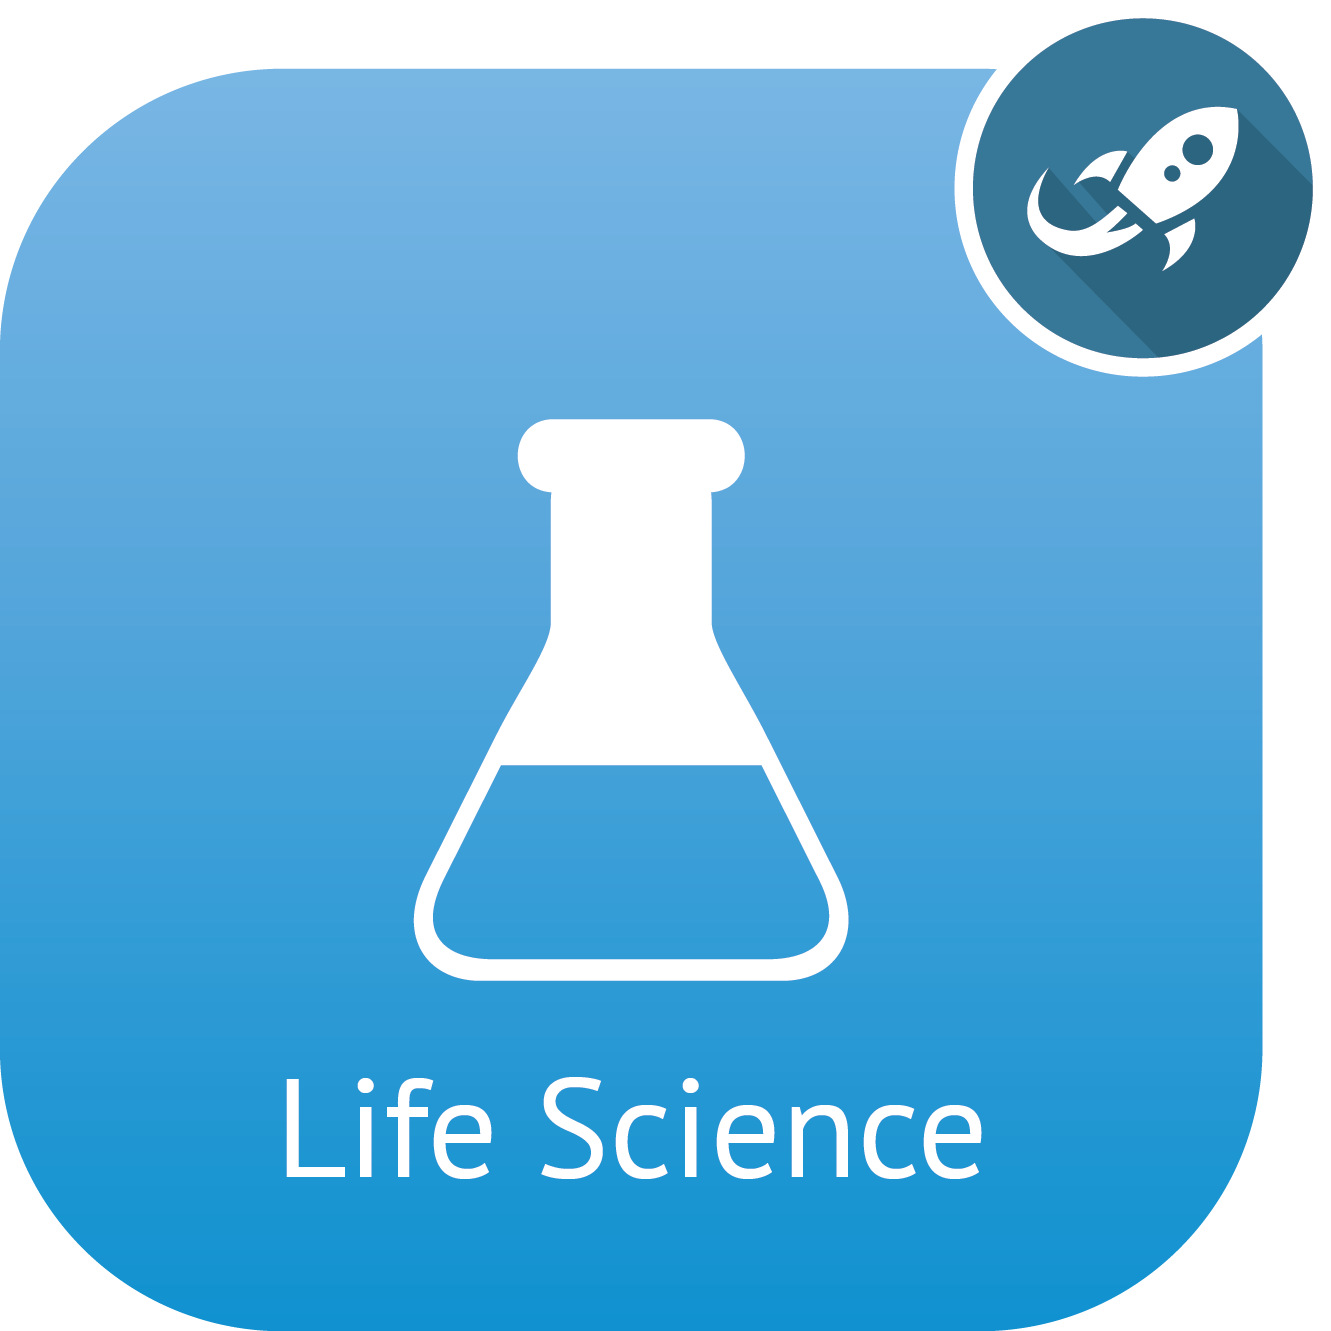 Life Science - One For All Field Change Order Form